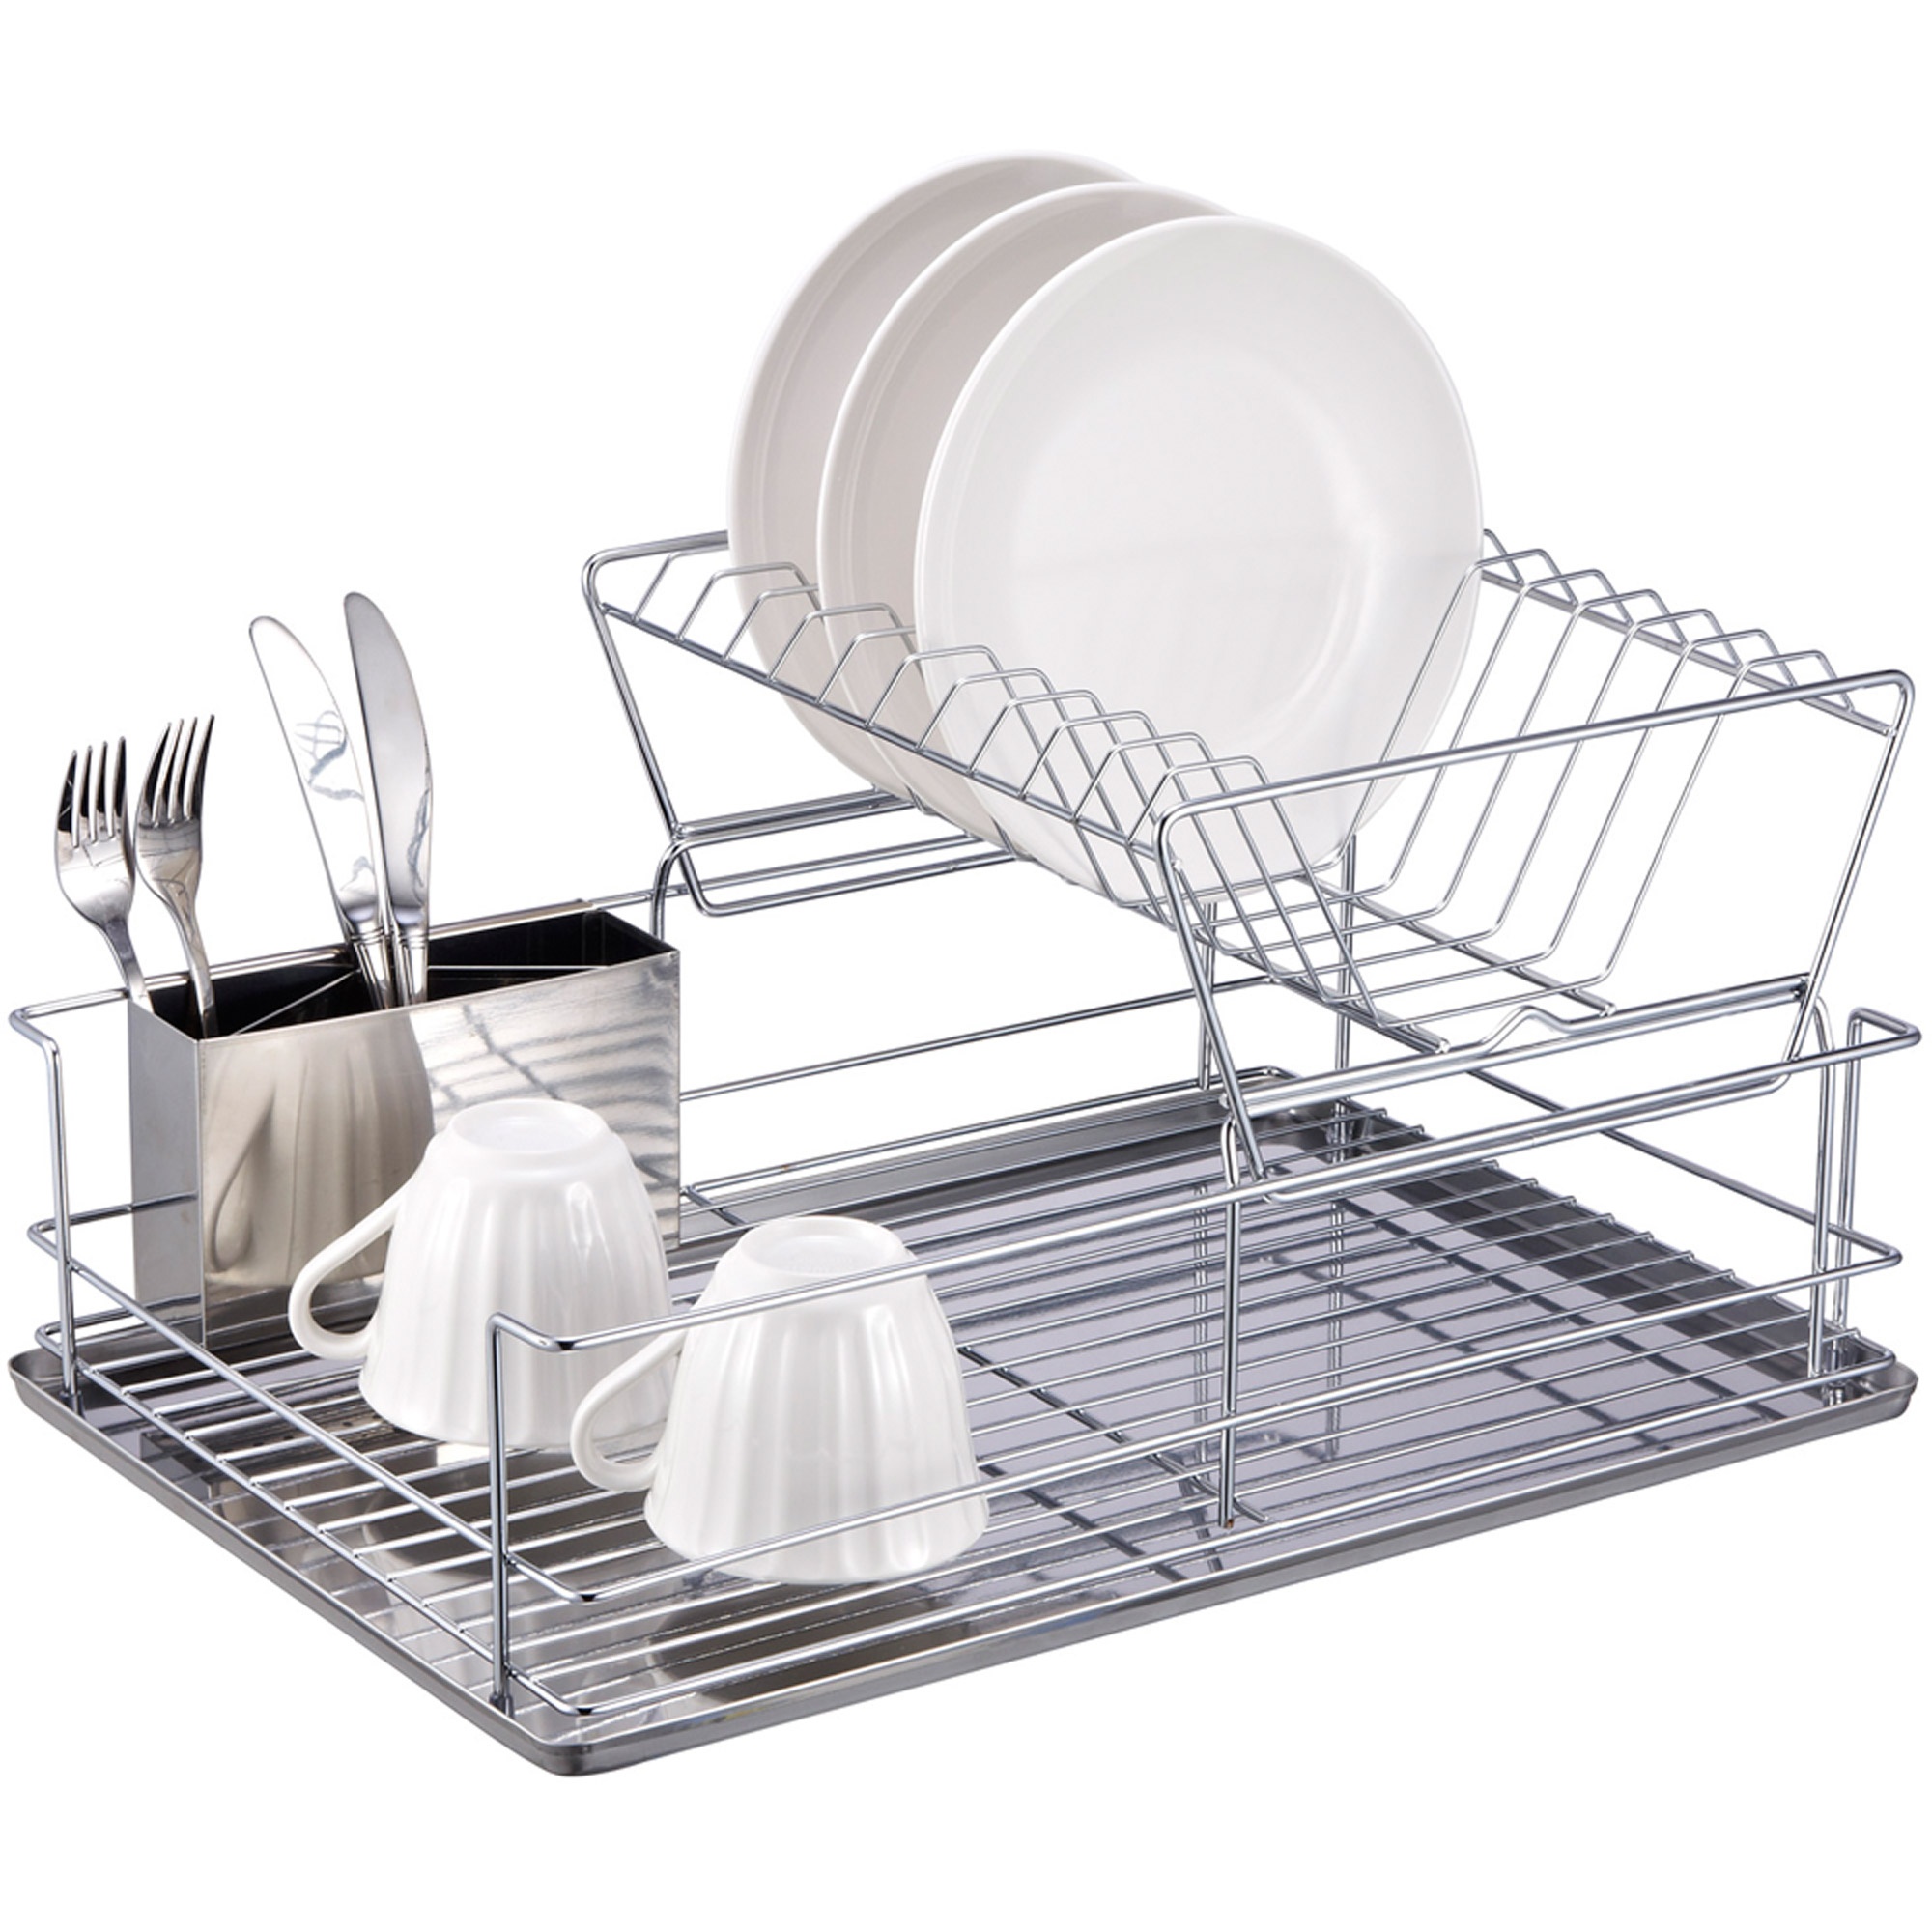 2-Tier Dish Rack, Chrome/Stainless Steel